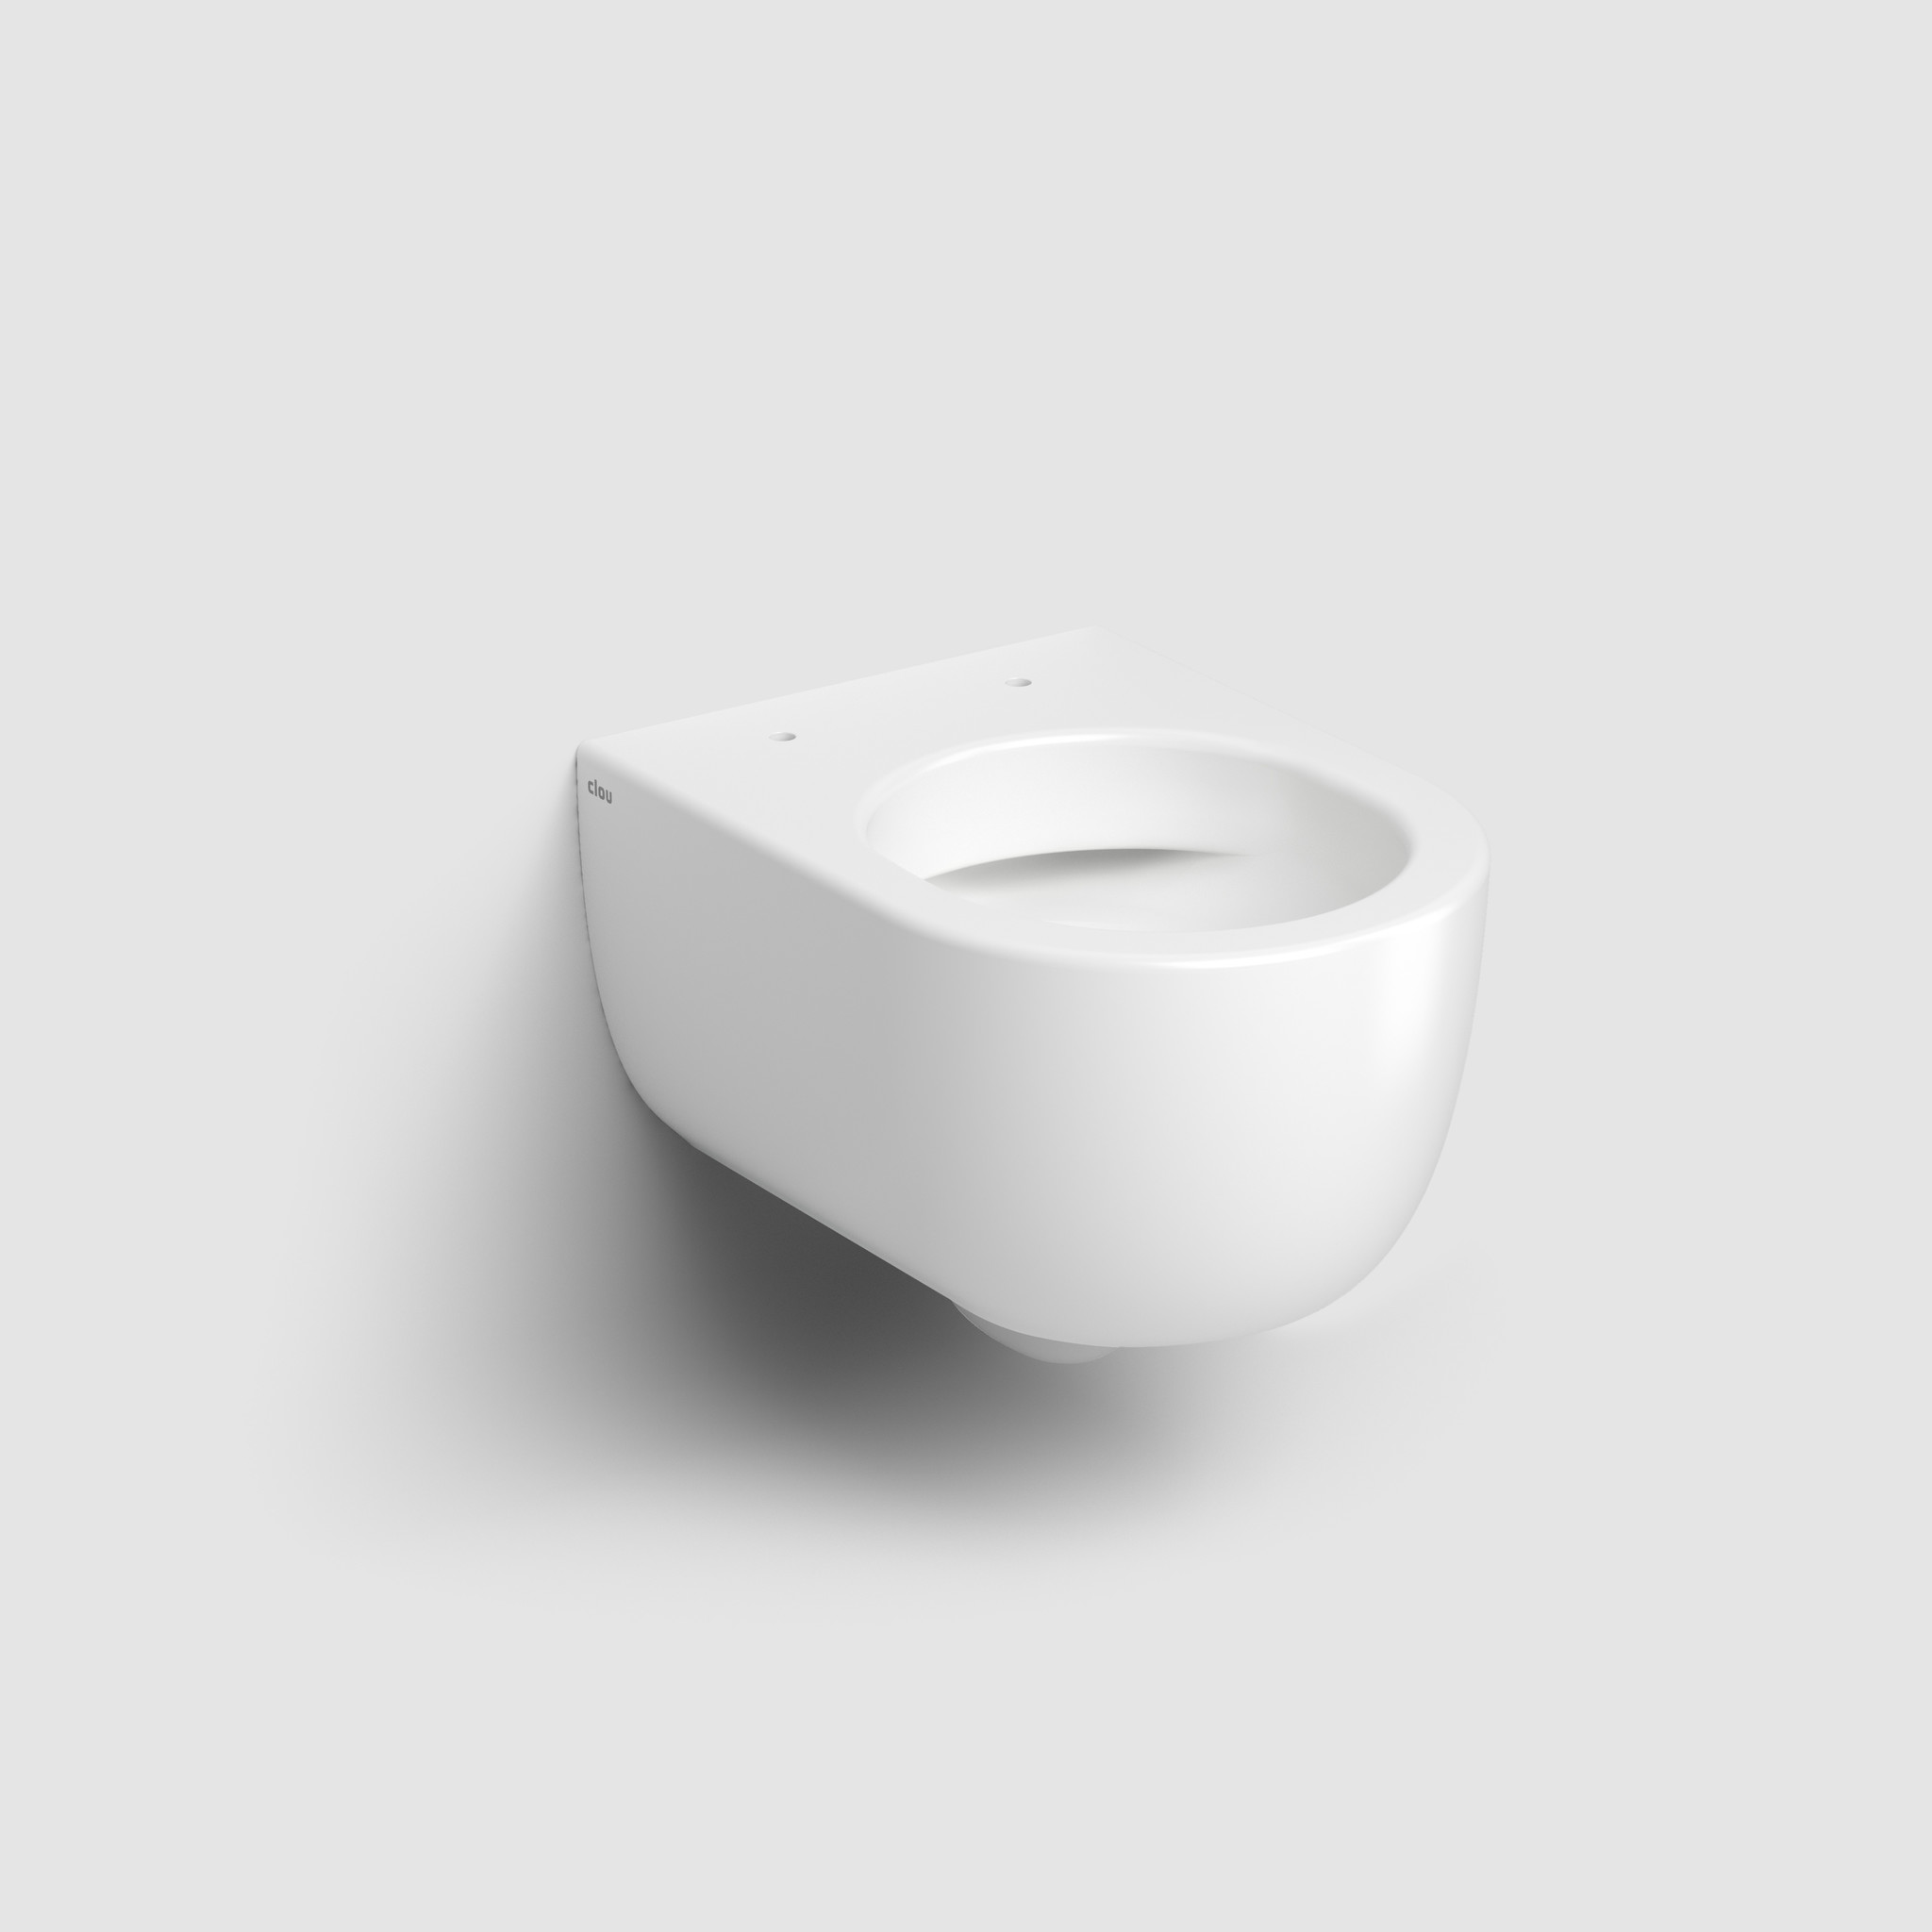 Hammock rimless toilet 49cm without seat and cover